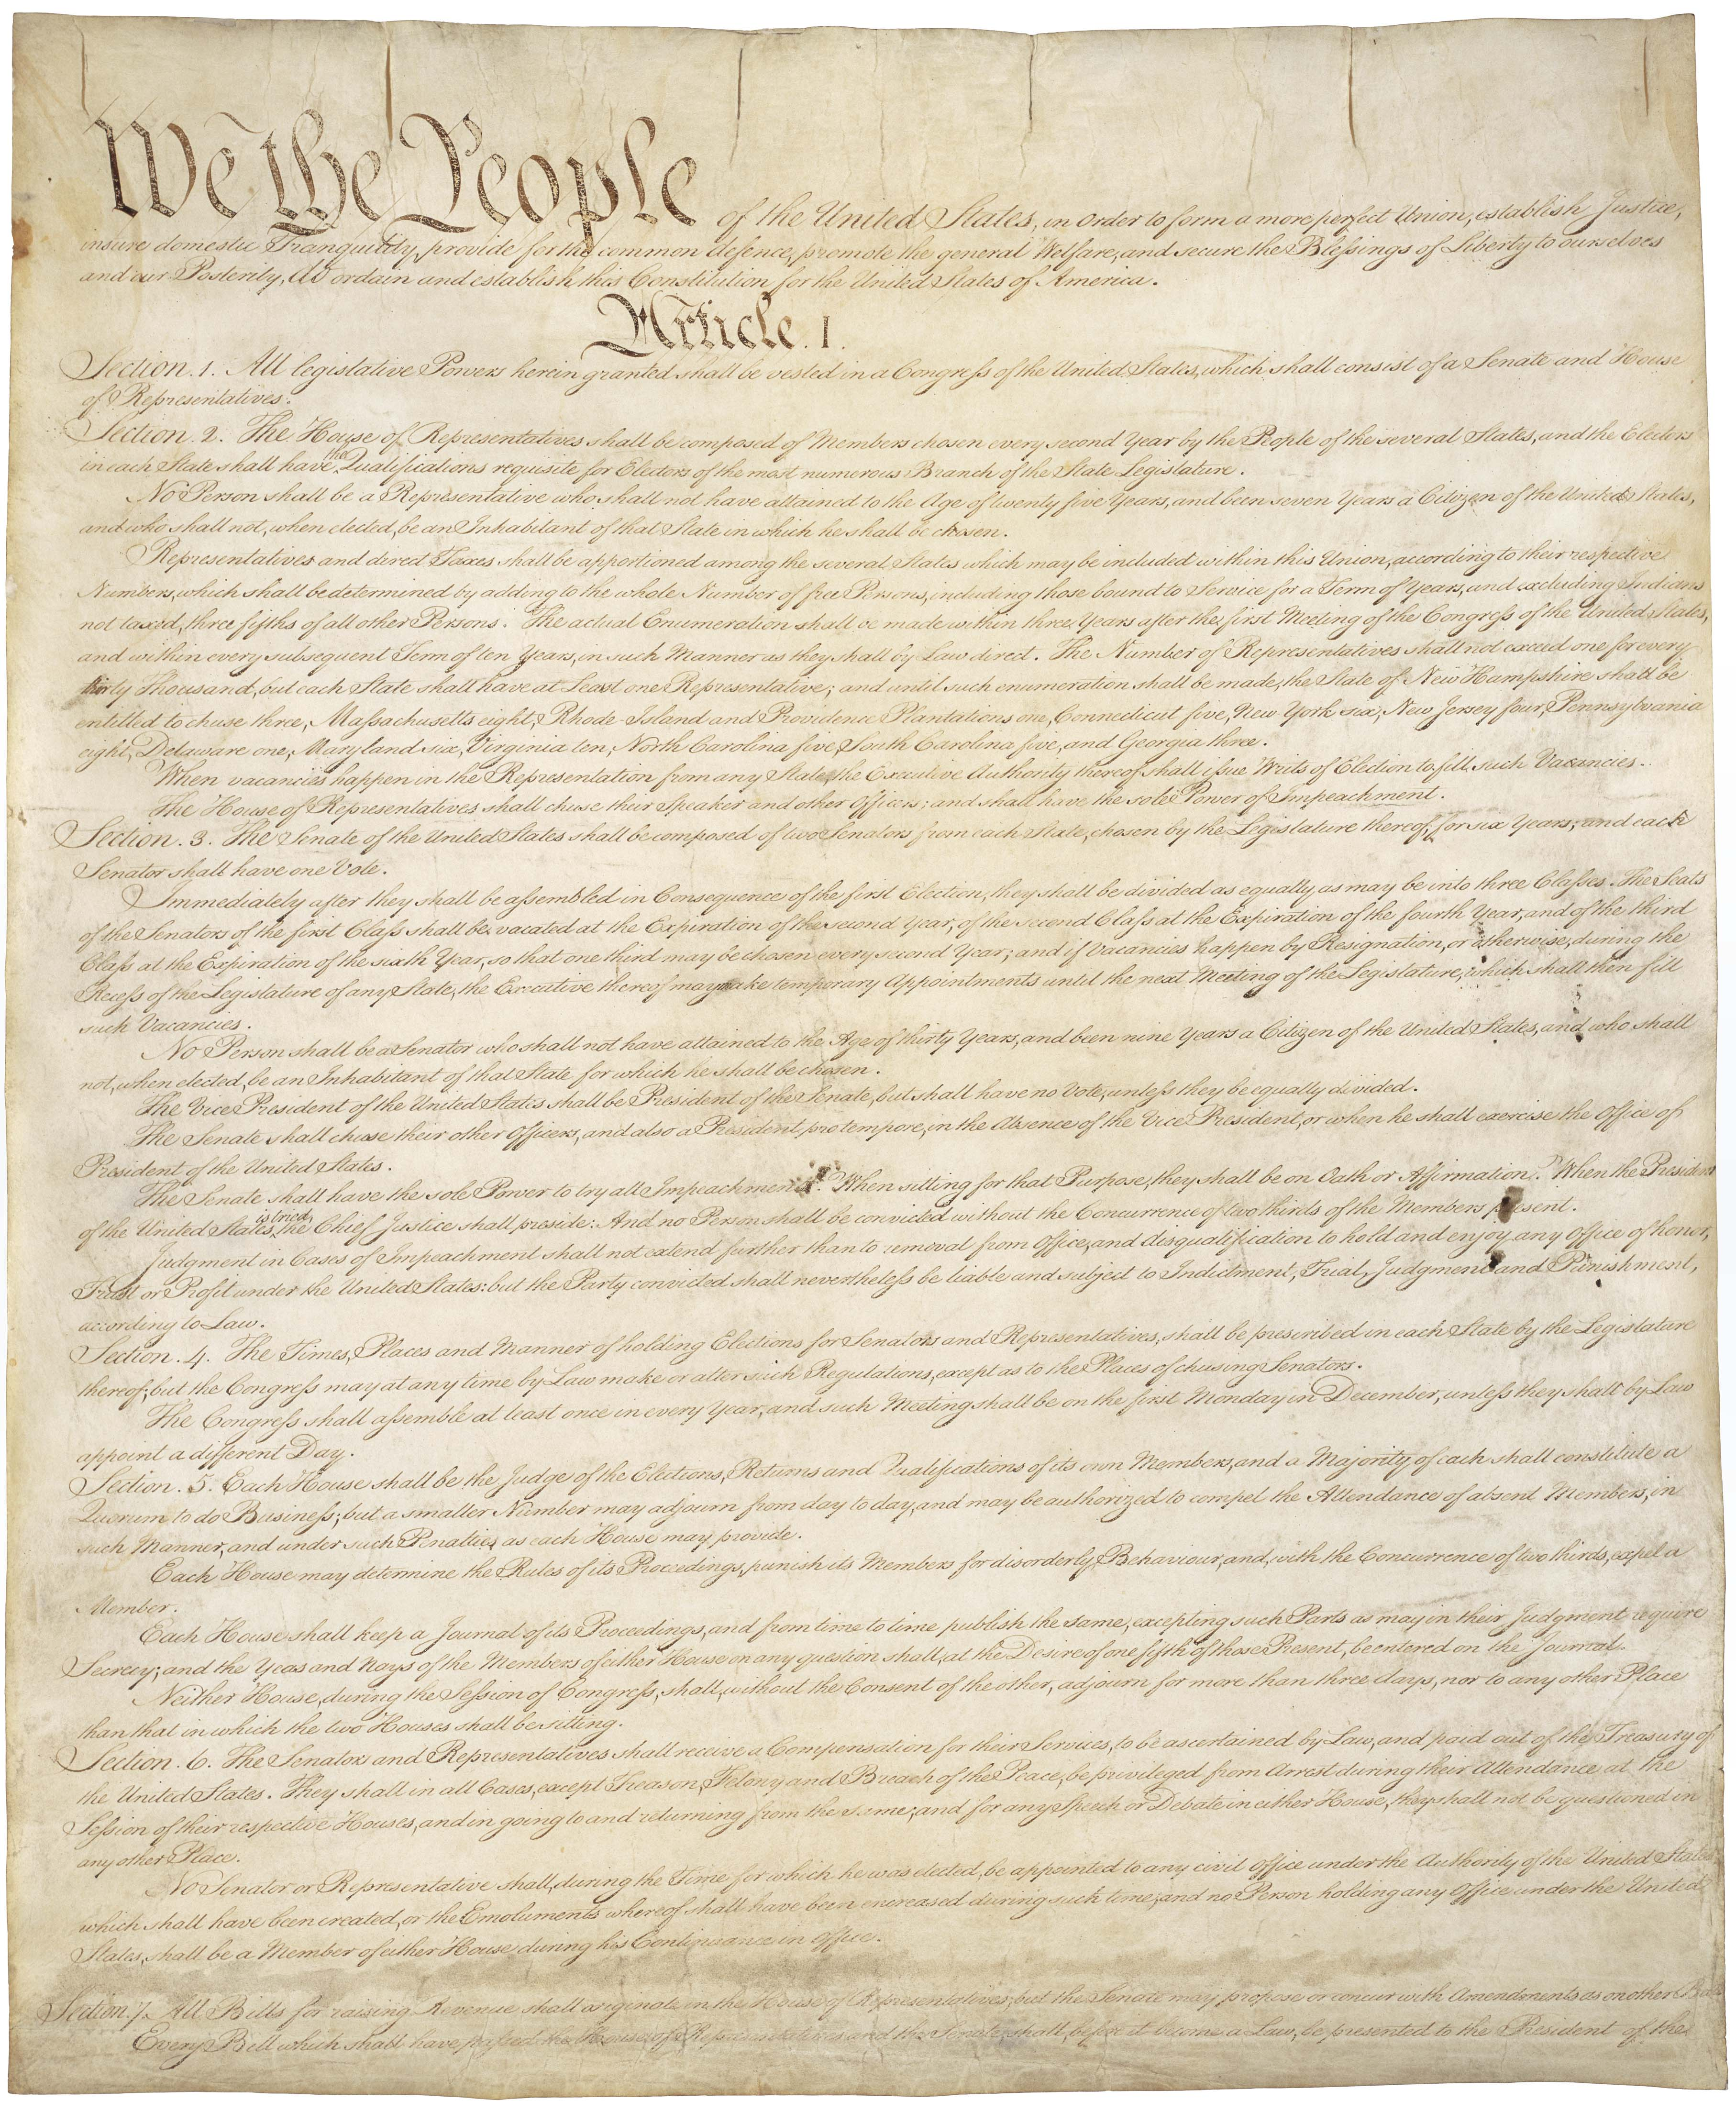 historicaldocuments:constitution_pg1of4_ac.jpg